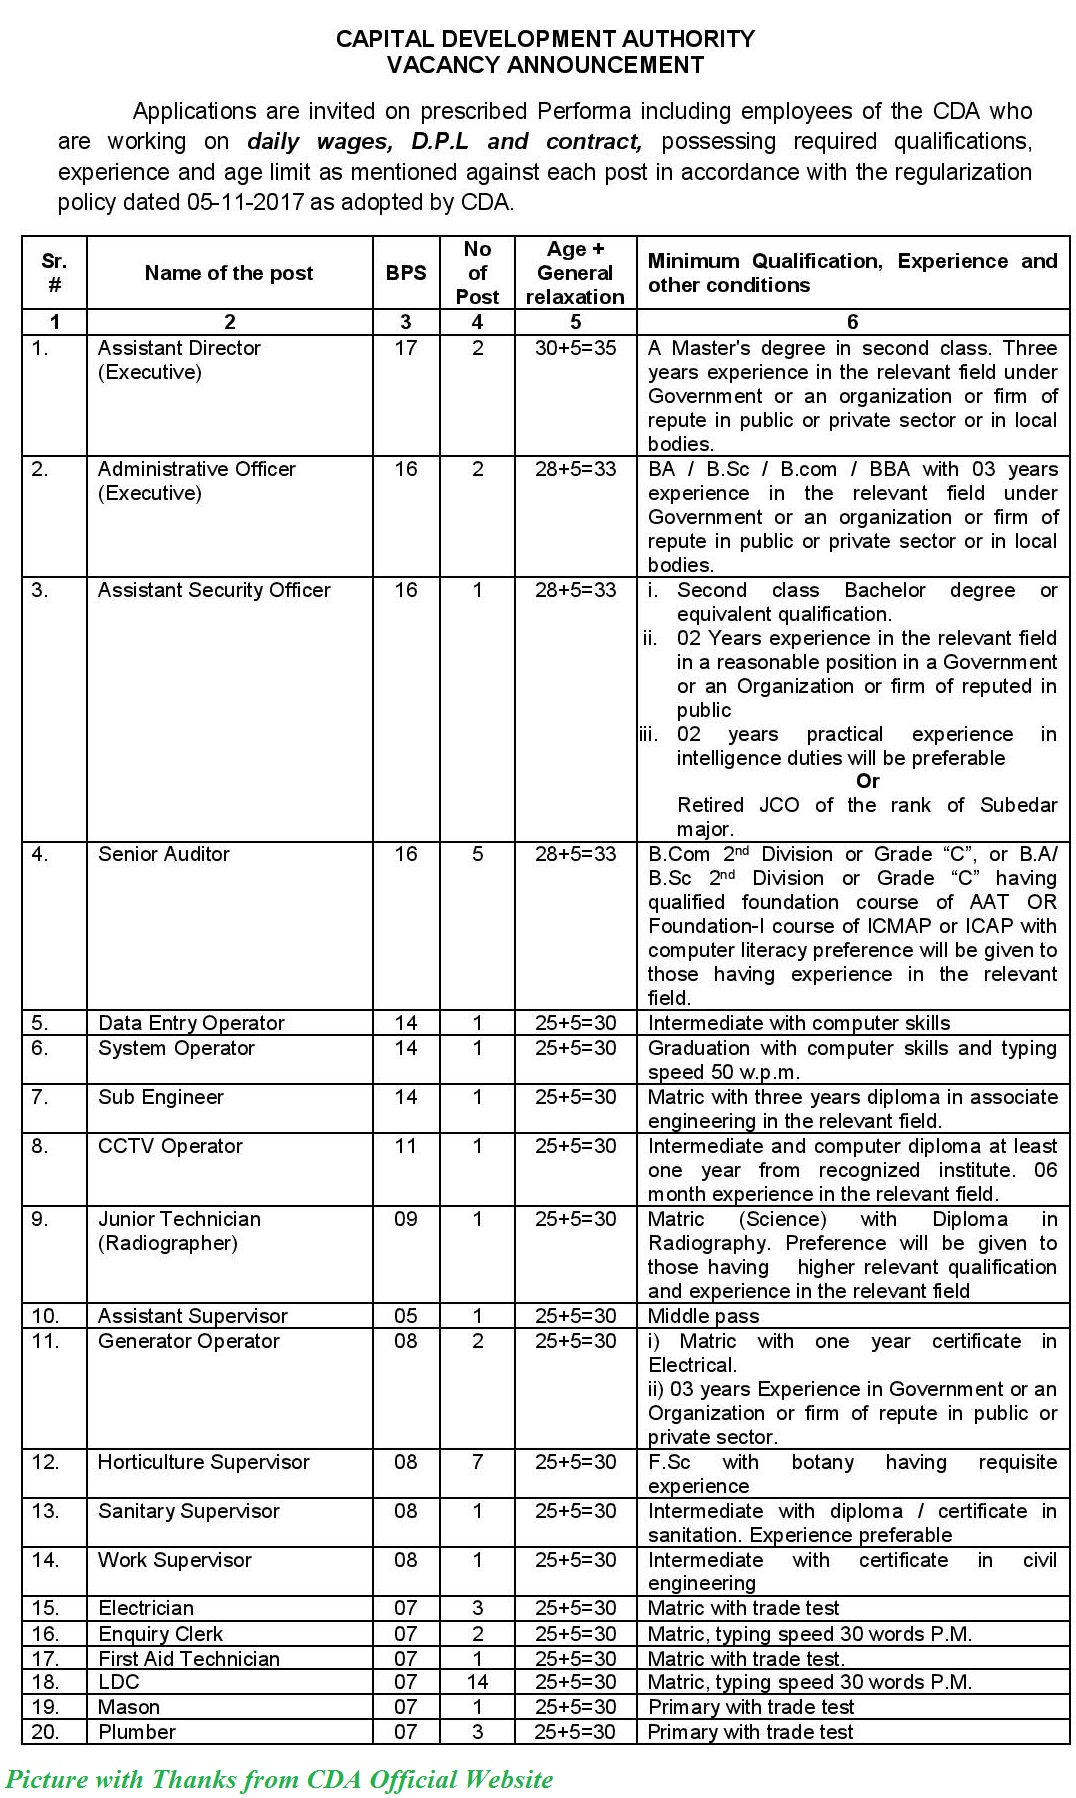 Capital Development Authority Jobs 2020 - Latest 65+ Posts in Capital Development Authority 2020